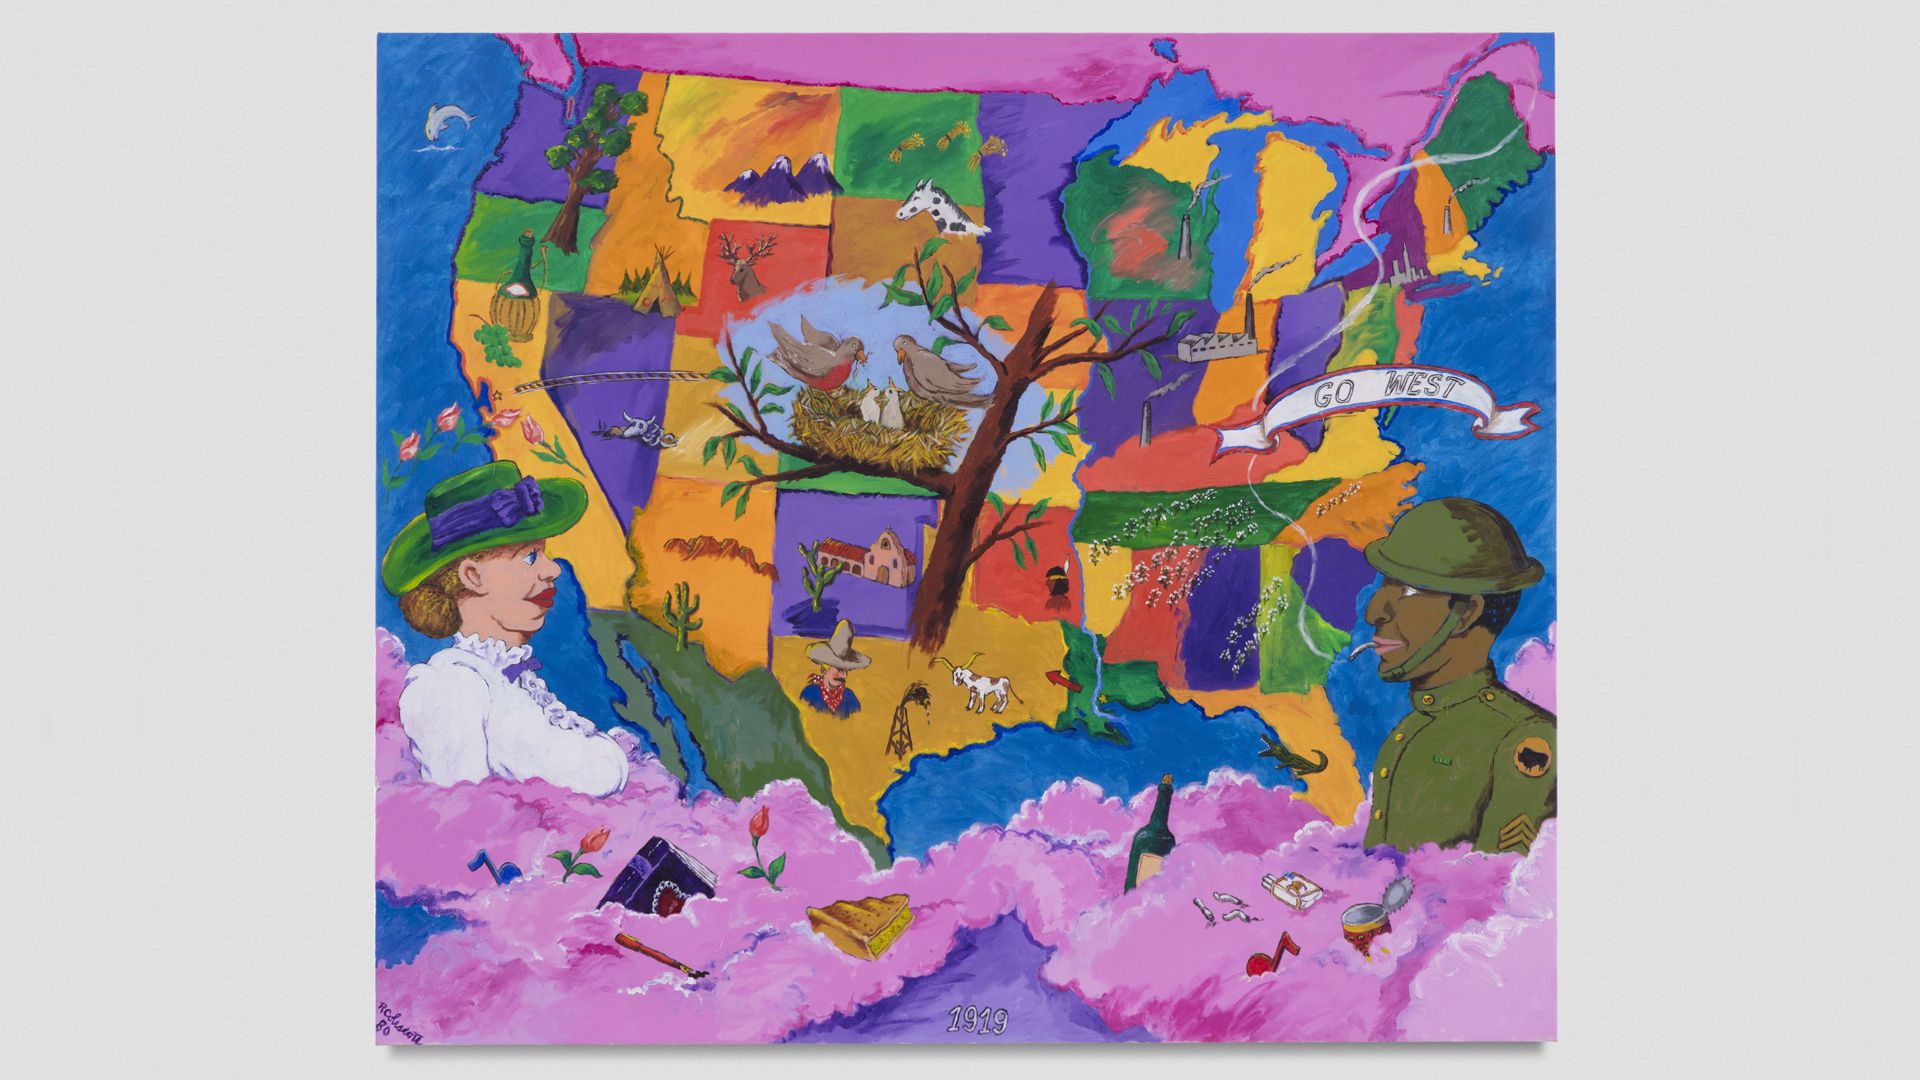 A bright-colored painting by Robert Colescott